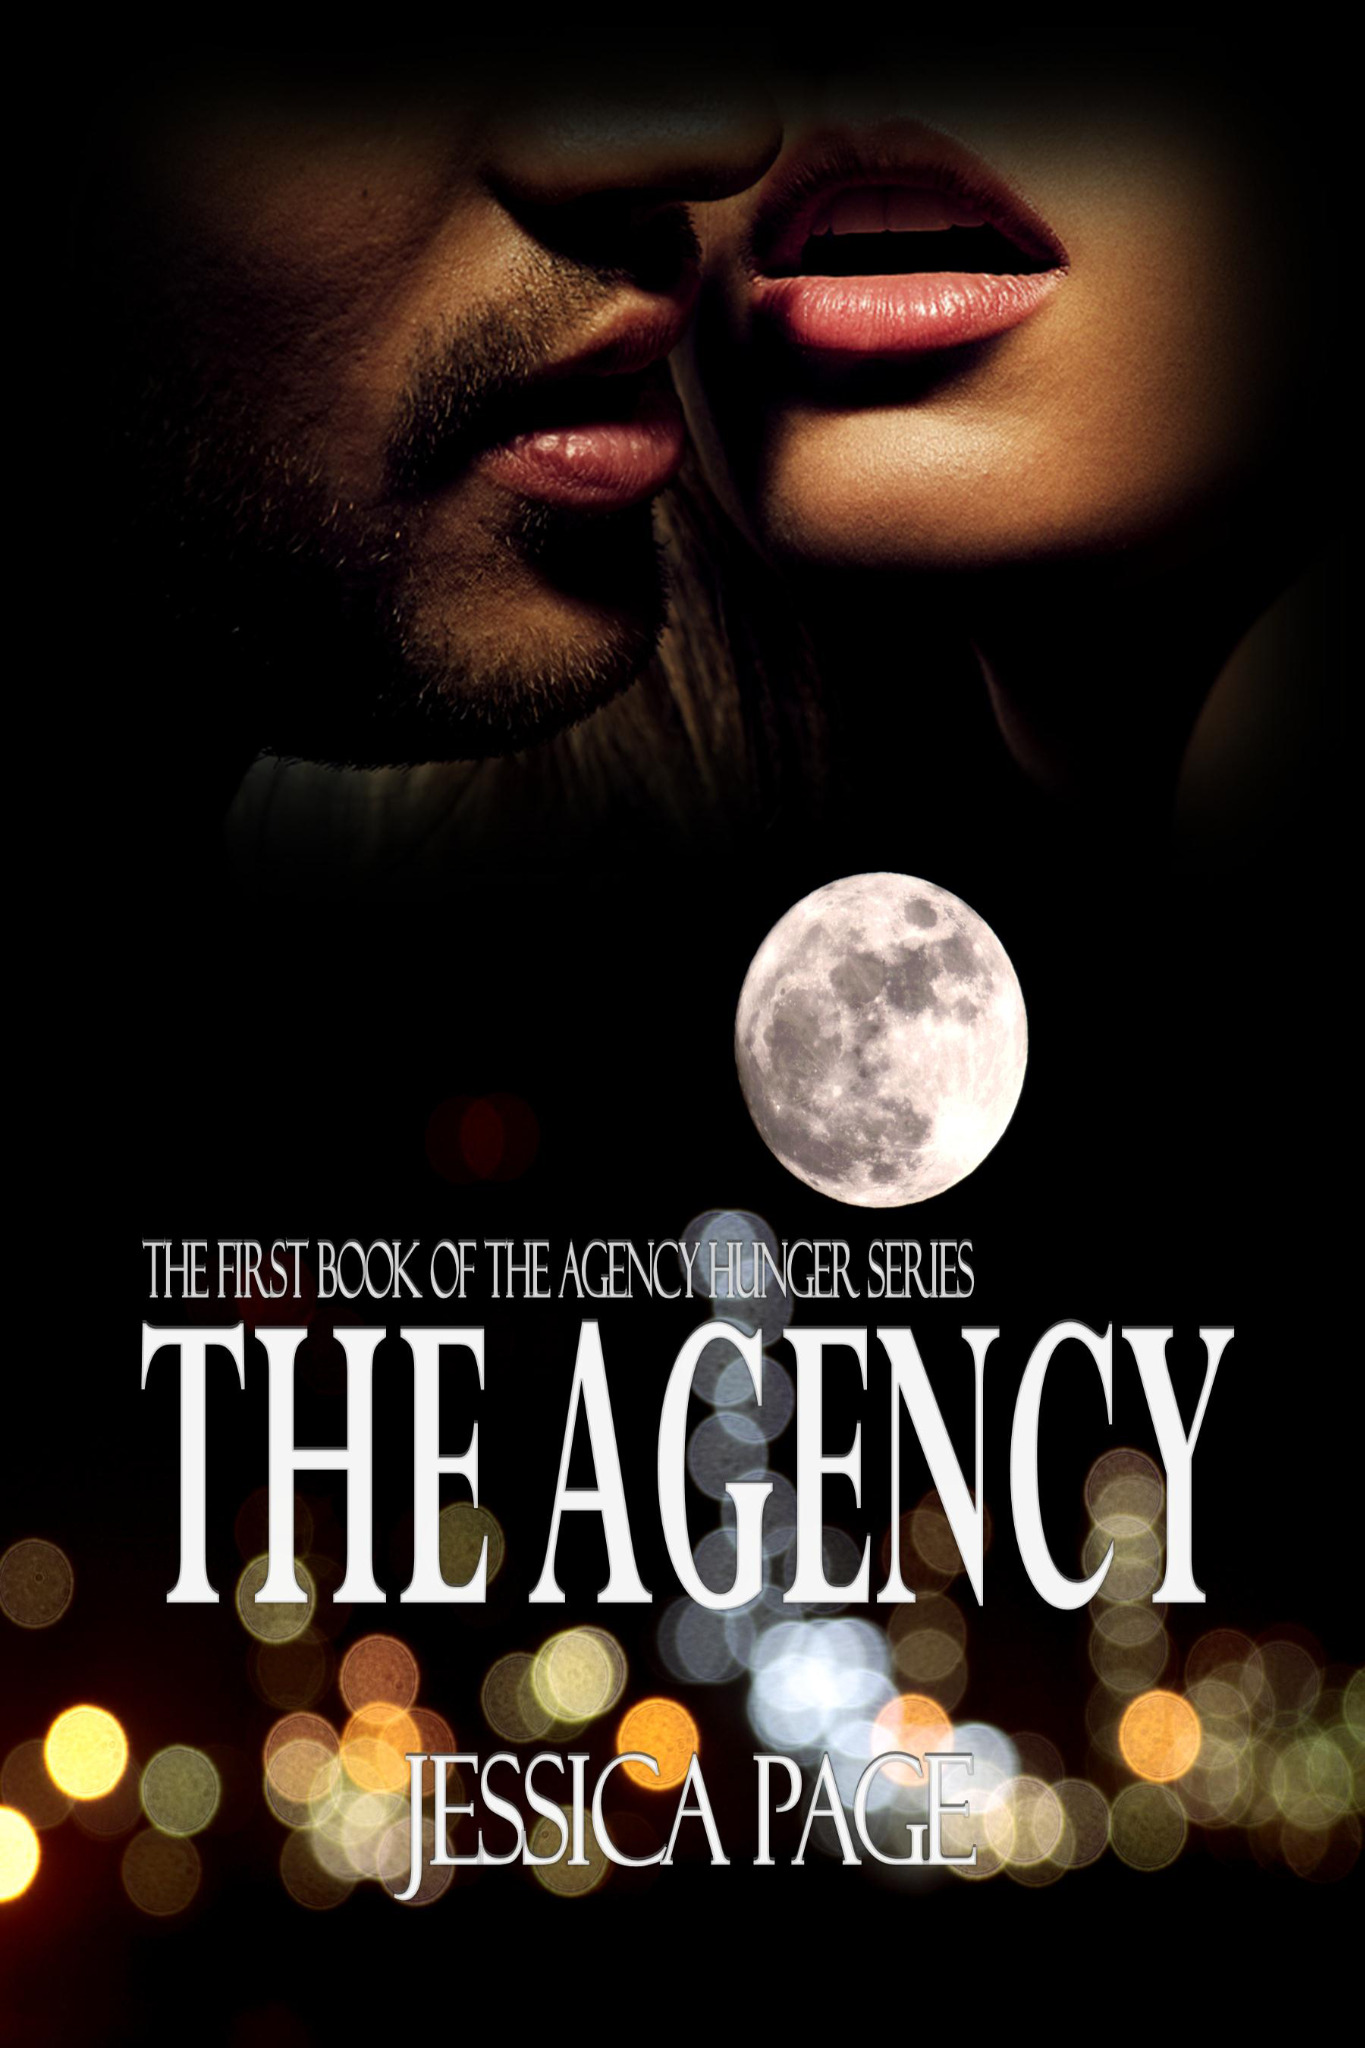 The Agency - The Agency Hunger Series Book 1